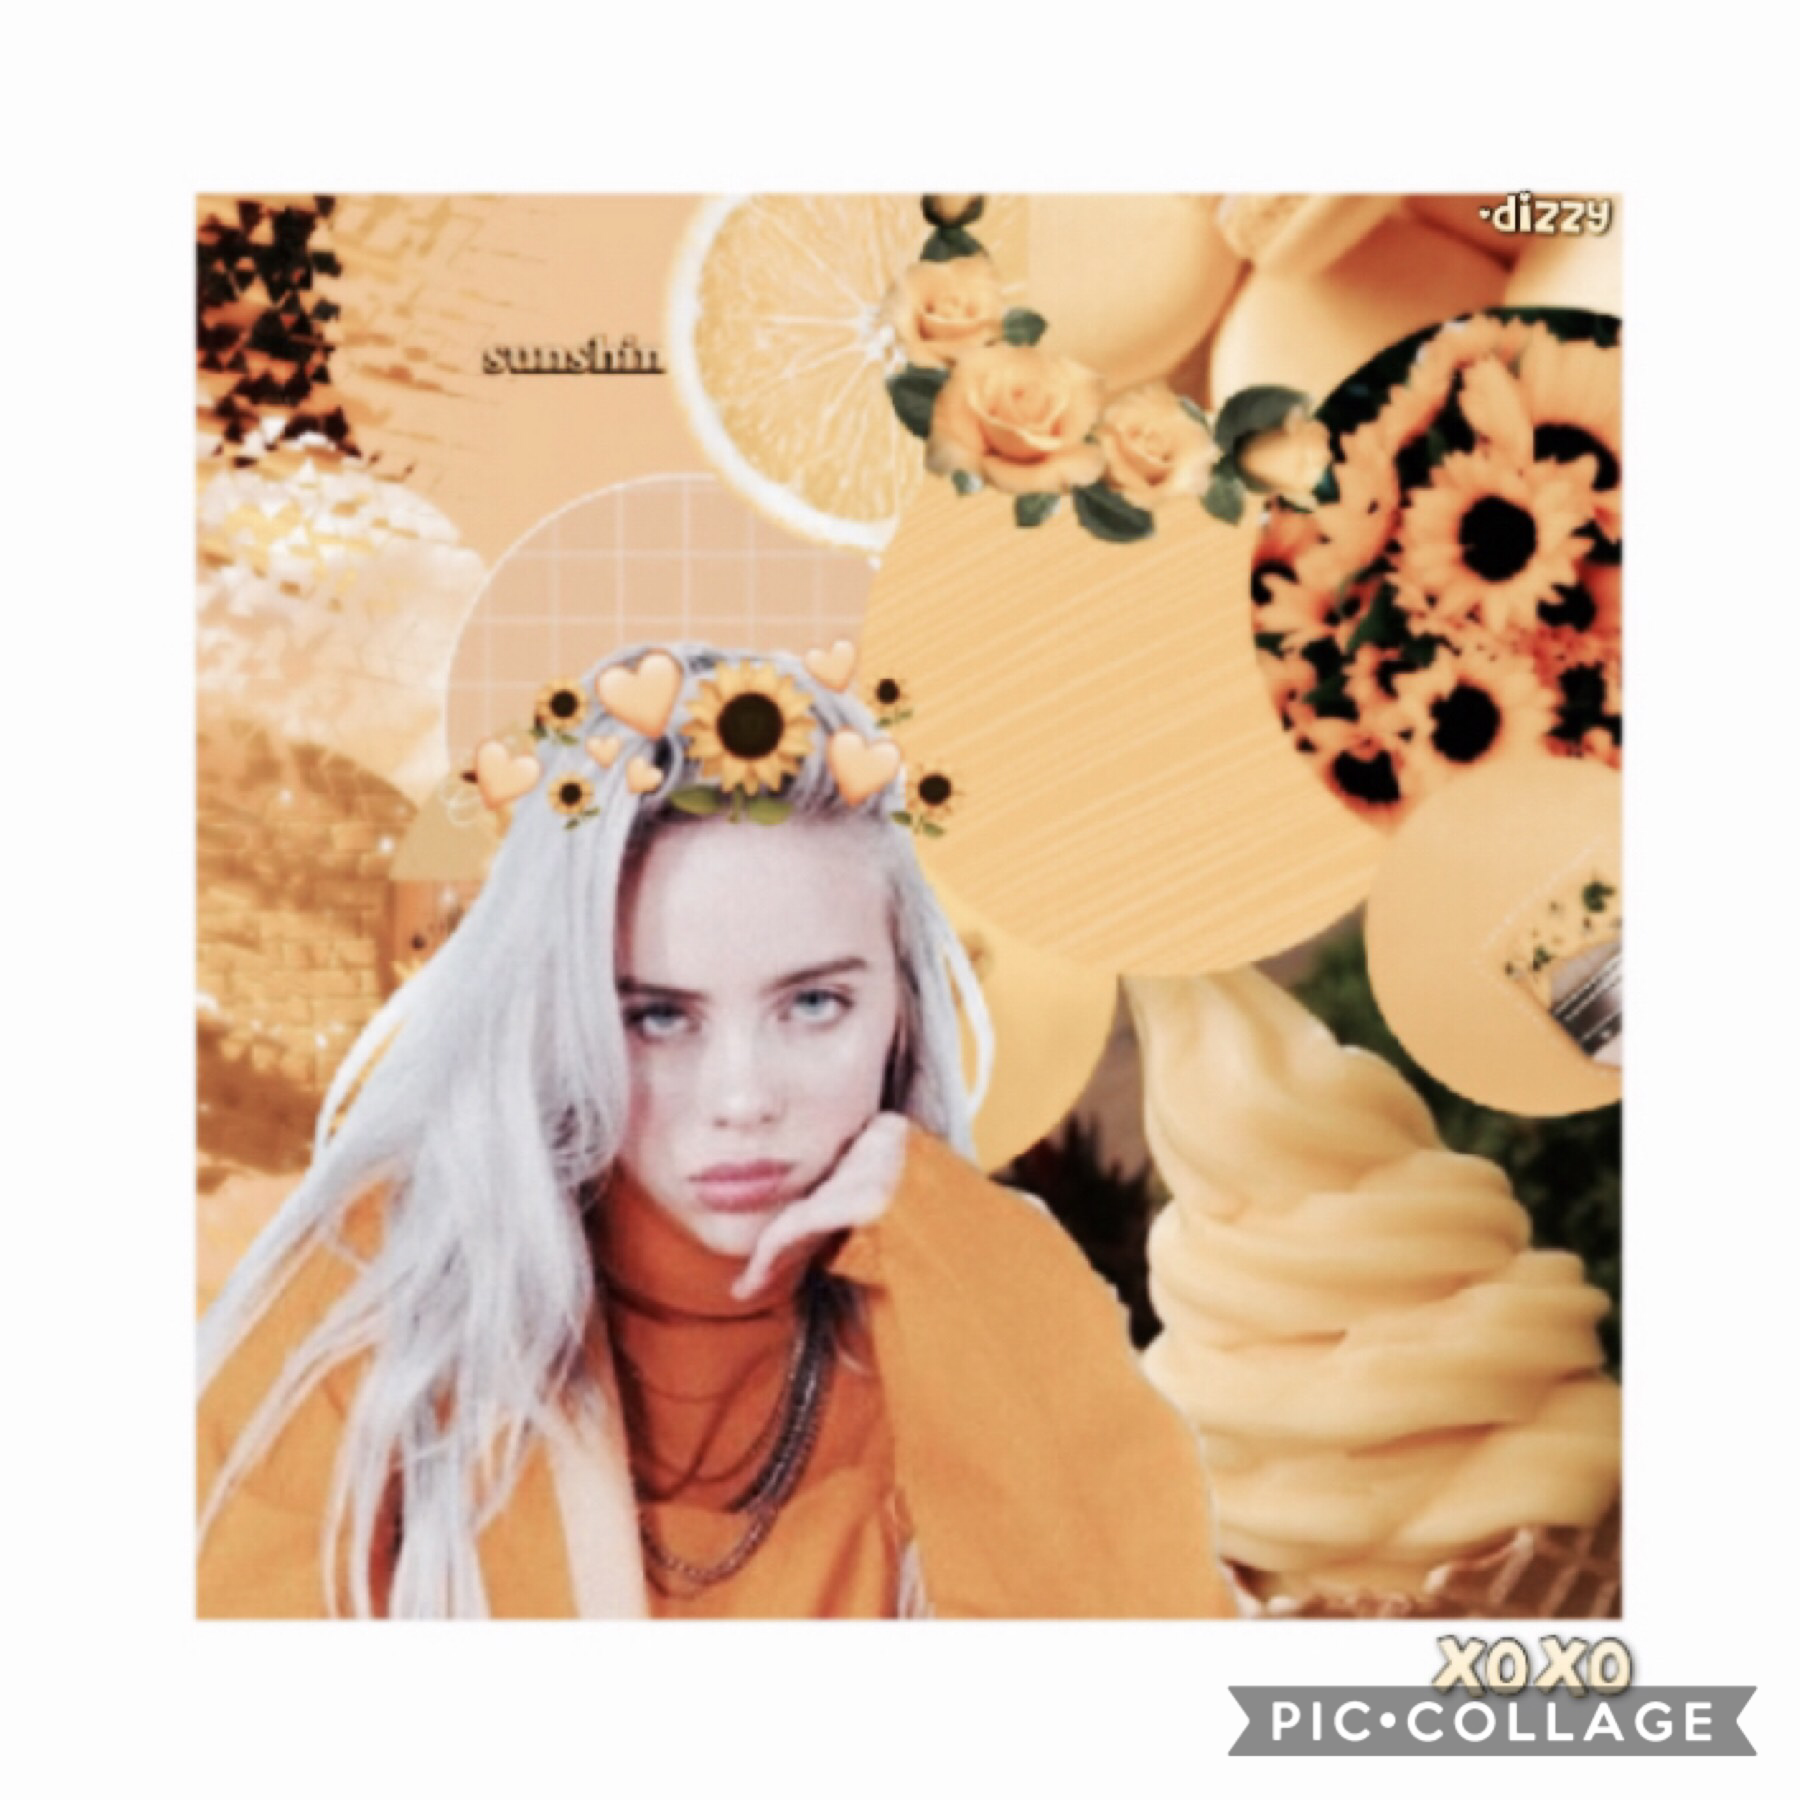 tap🧡 not my best😂 sry for the inactivity😳 check remixes if u wanna know y I've been inactive🤷🏻‍♀️😂 anyone wanna collab?💛 QOTD: fav song? AOTD: Idgaf by Sik World🤪